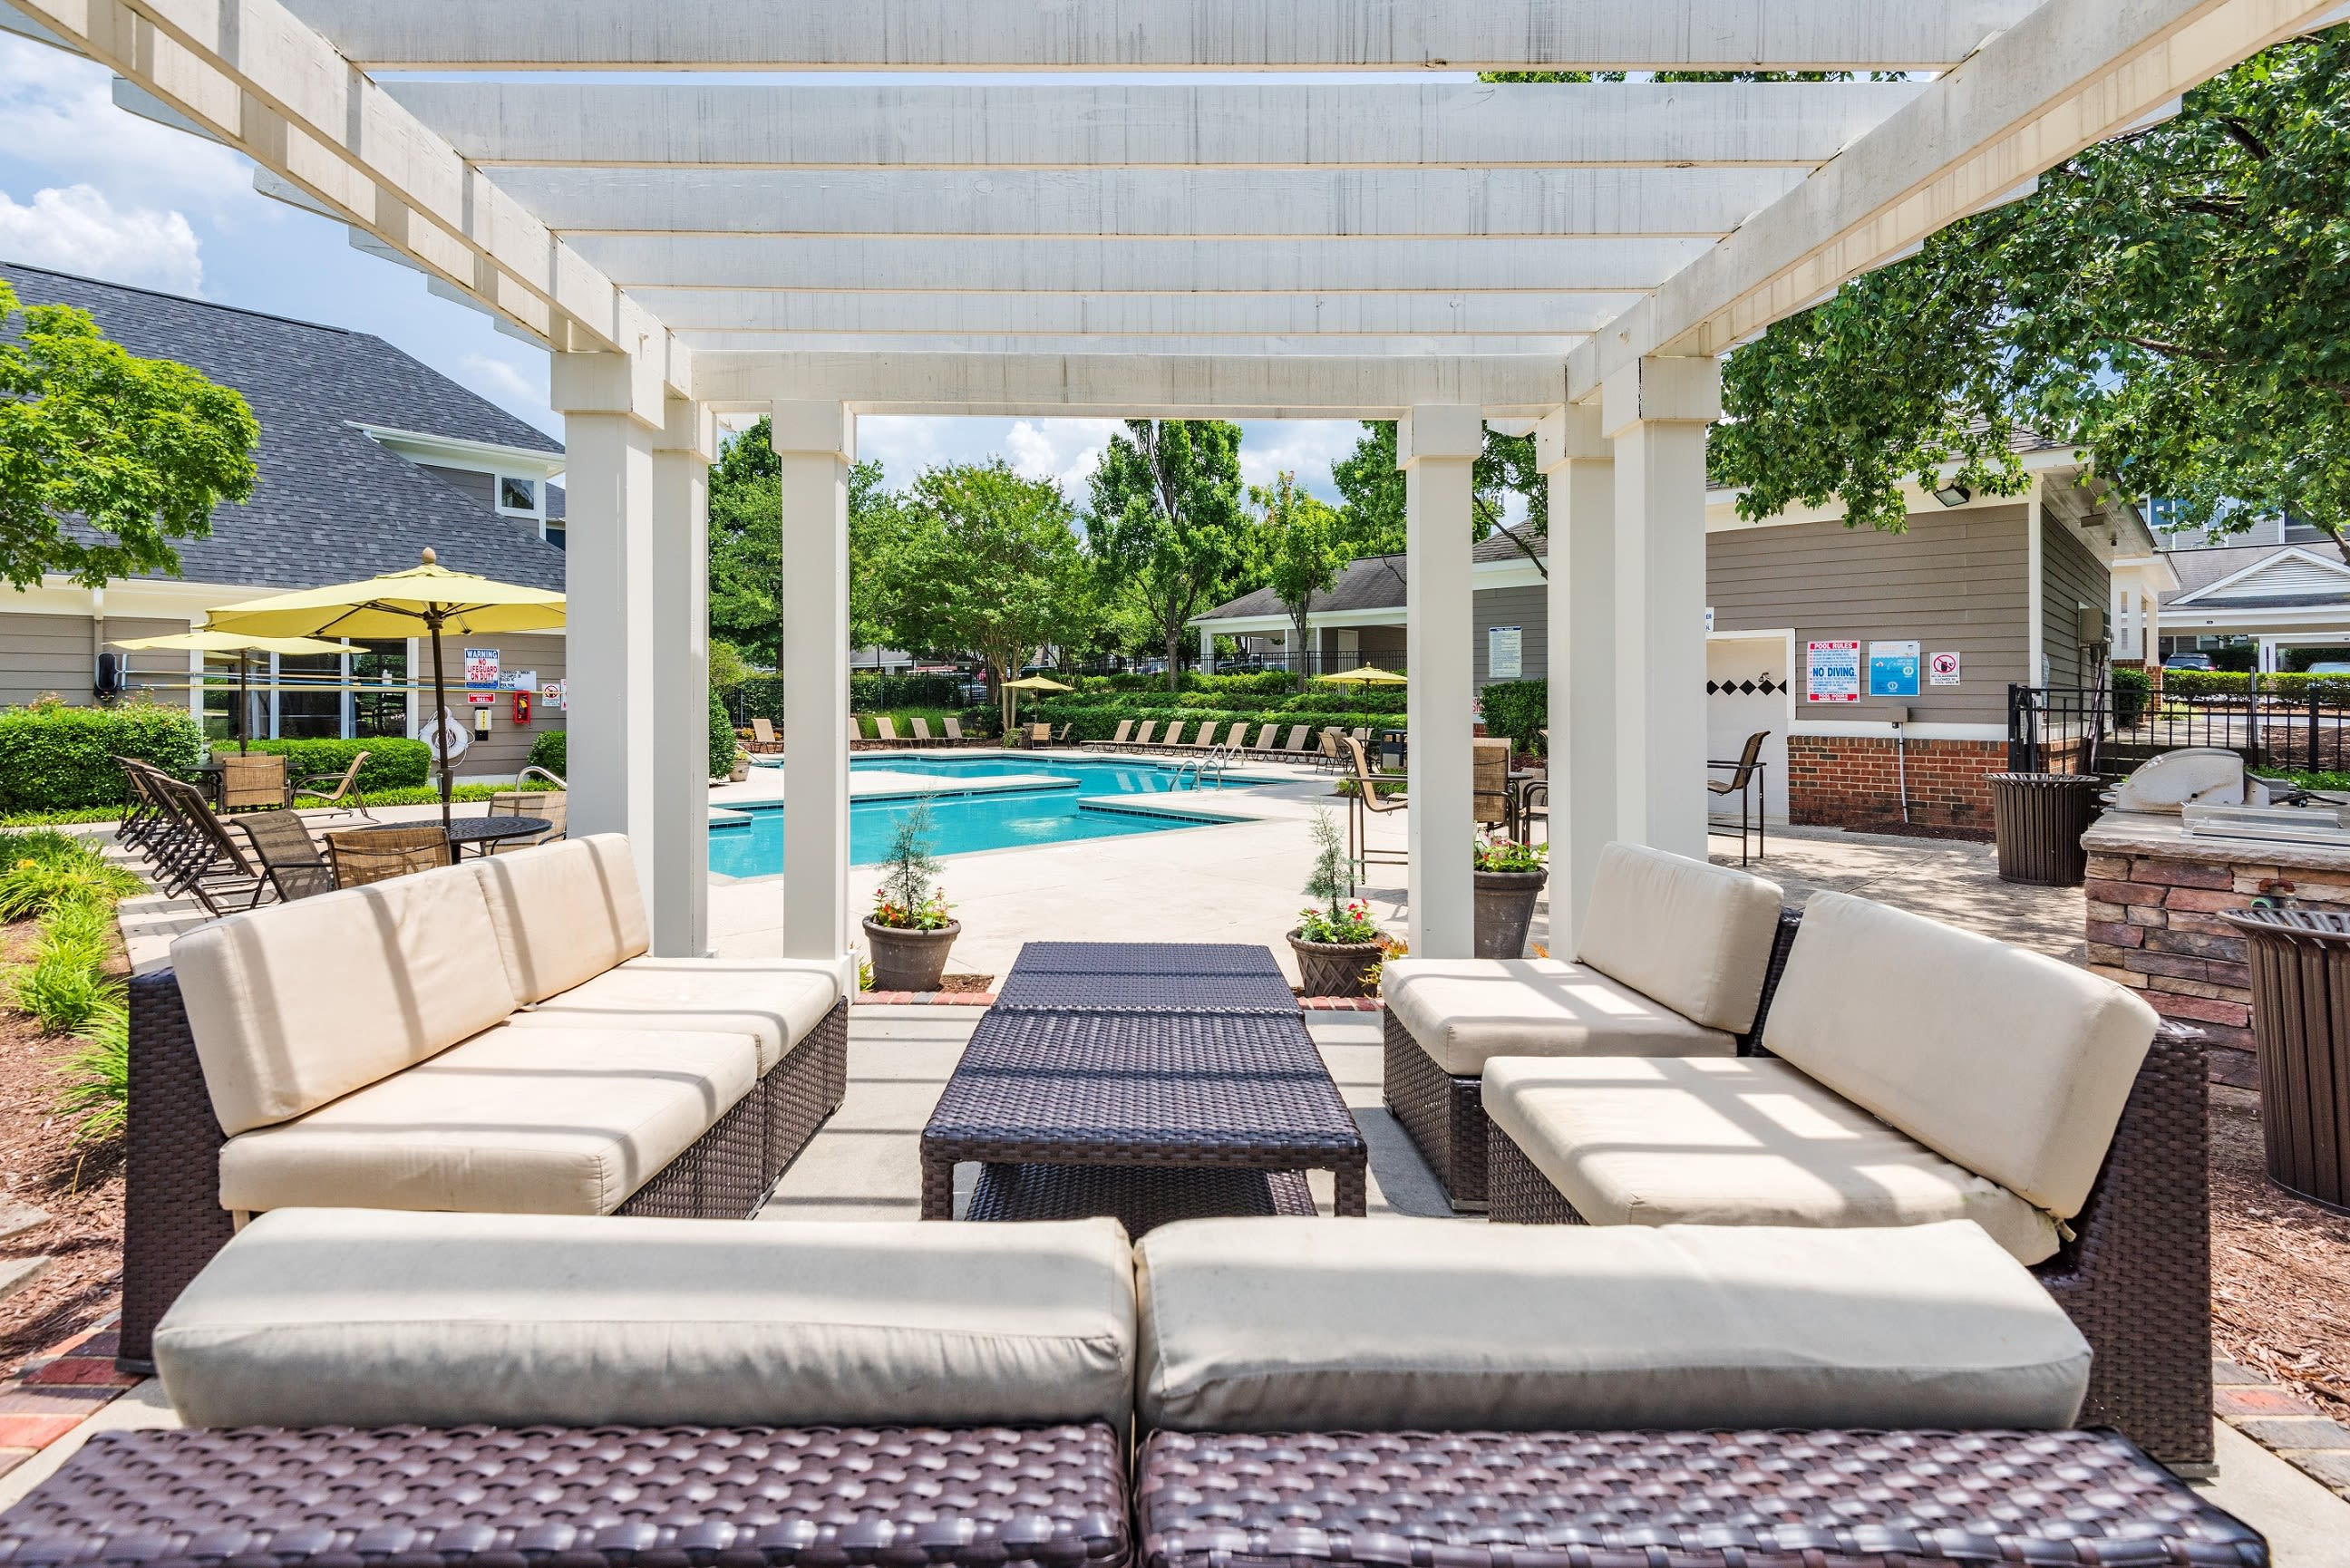 Pergola at The Mark in Raleigh, North Carolina